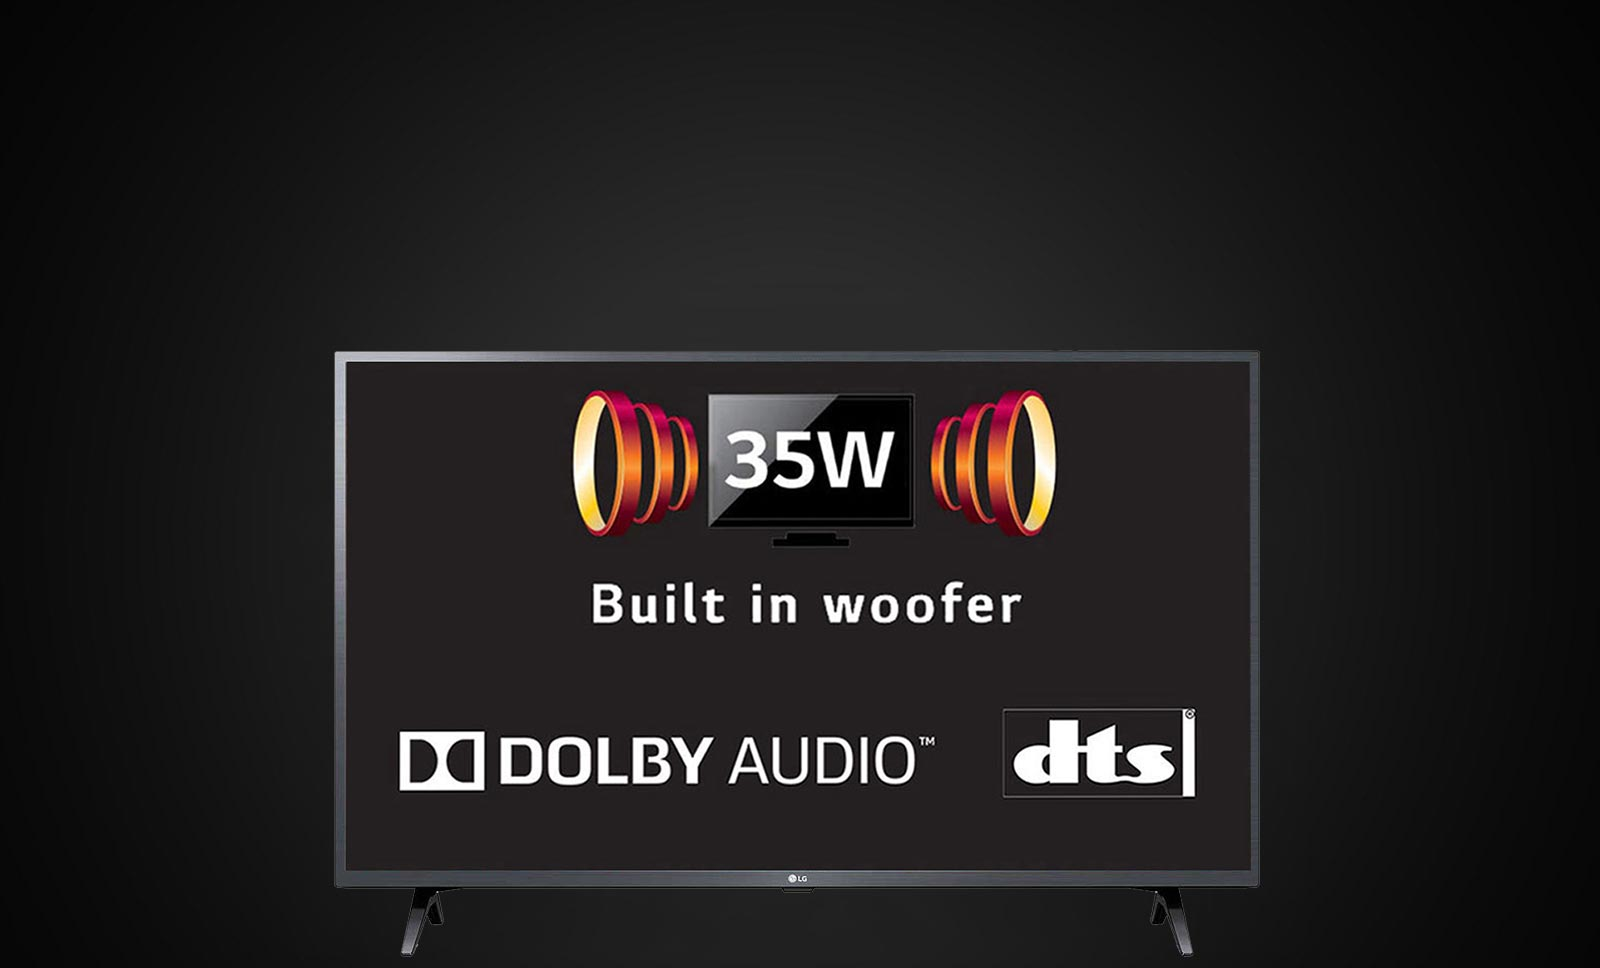 LG 35W Built In Woofer Smart TV